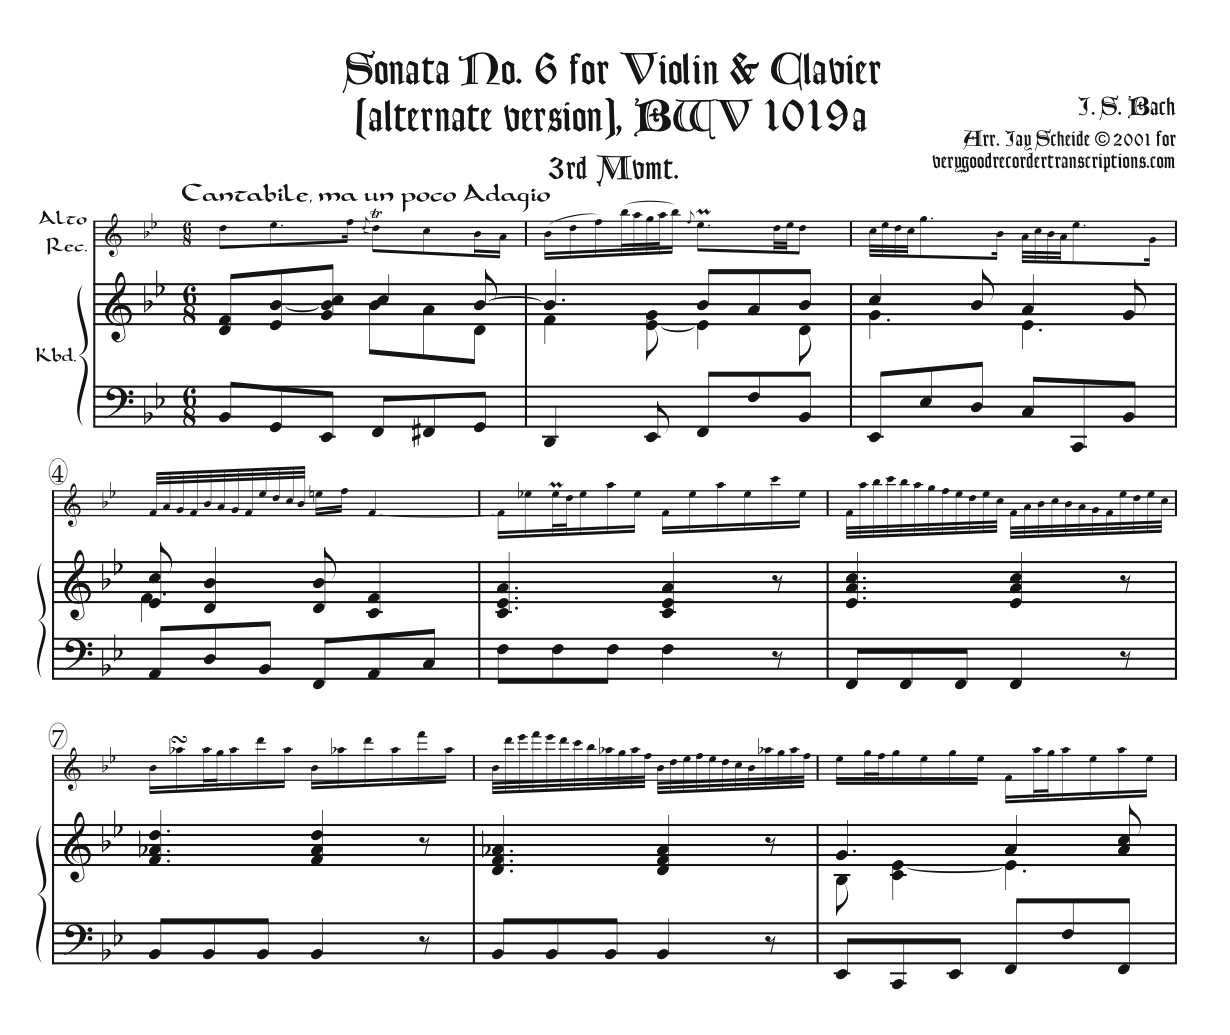 """Aria, """"Heil und Segen,"""" from Cantata 120 (See BWV 1019a in the """"Miscellaneous Chamber Music"""" section)"""